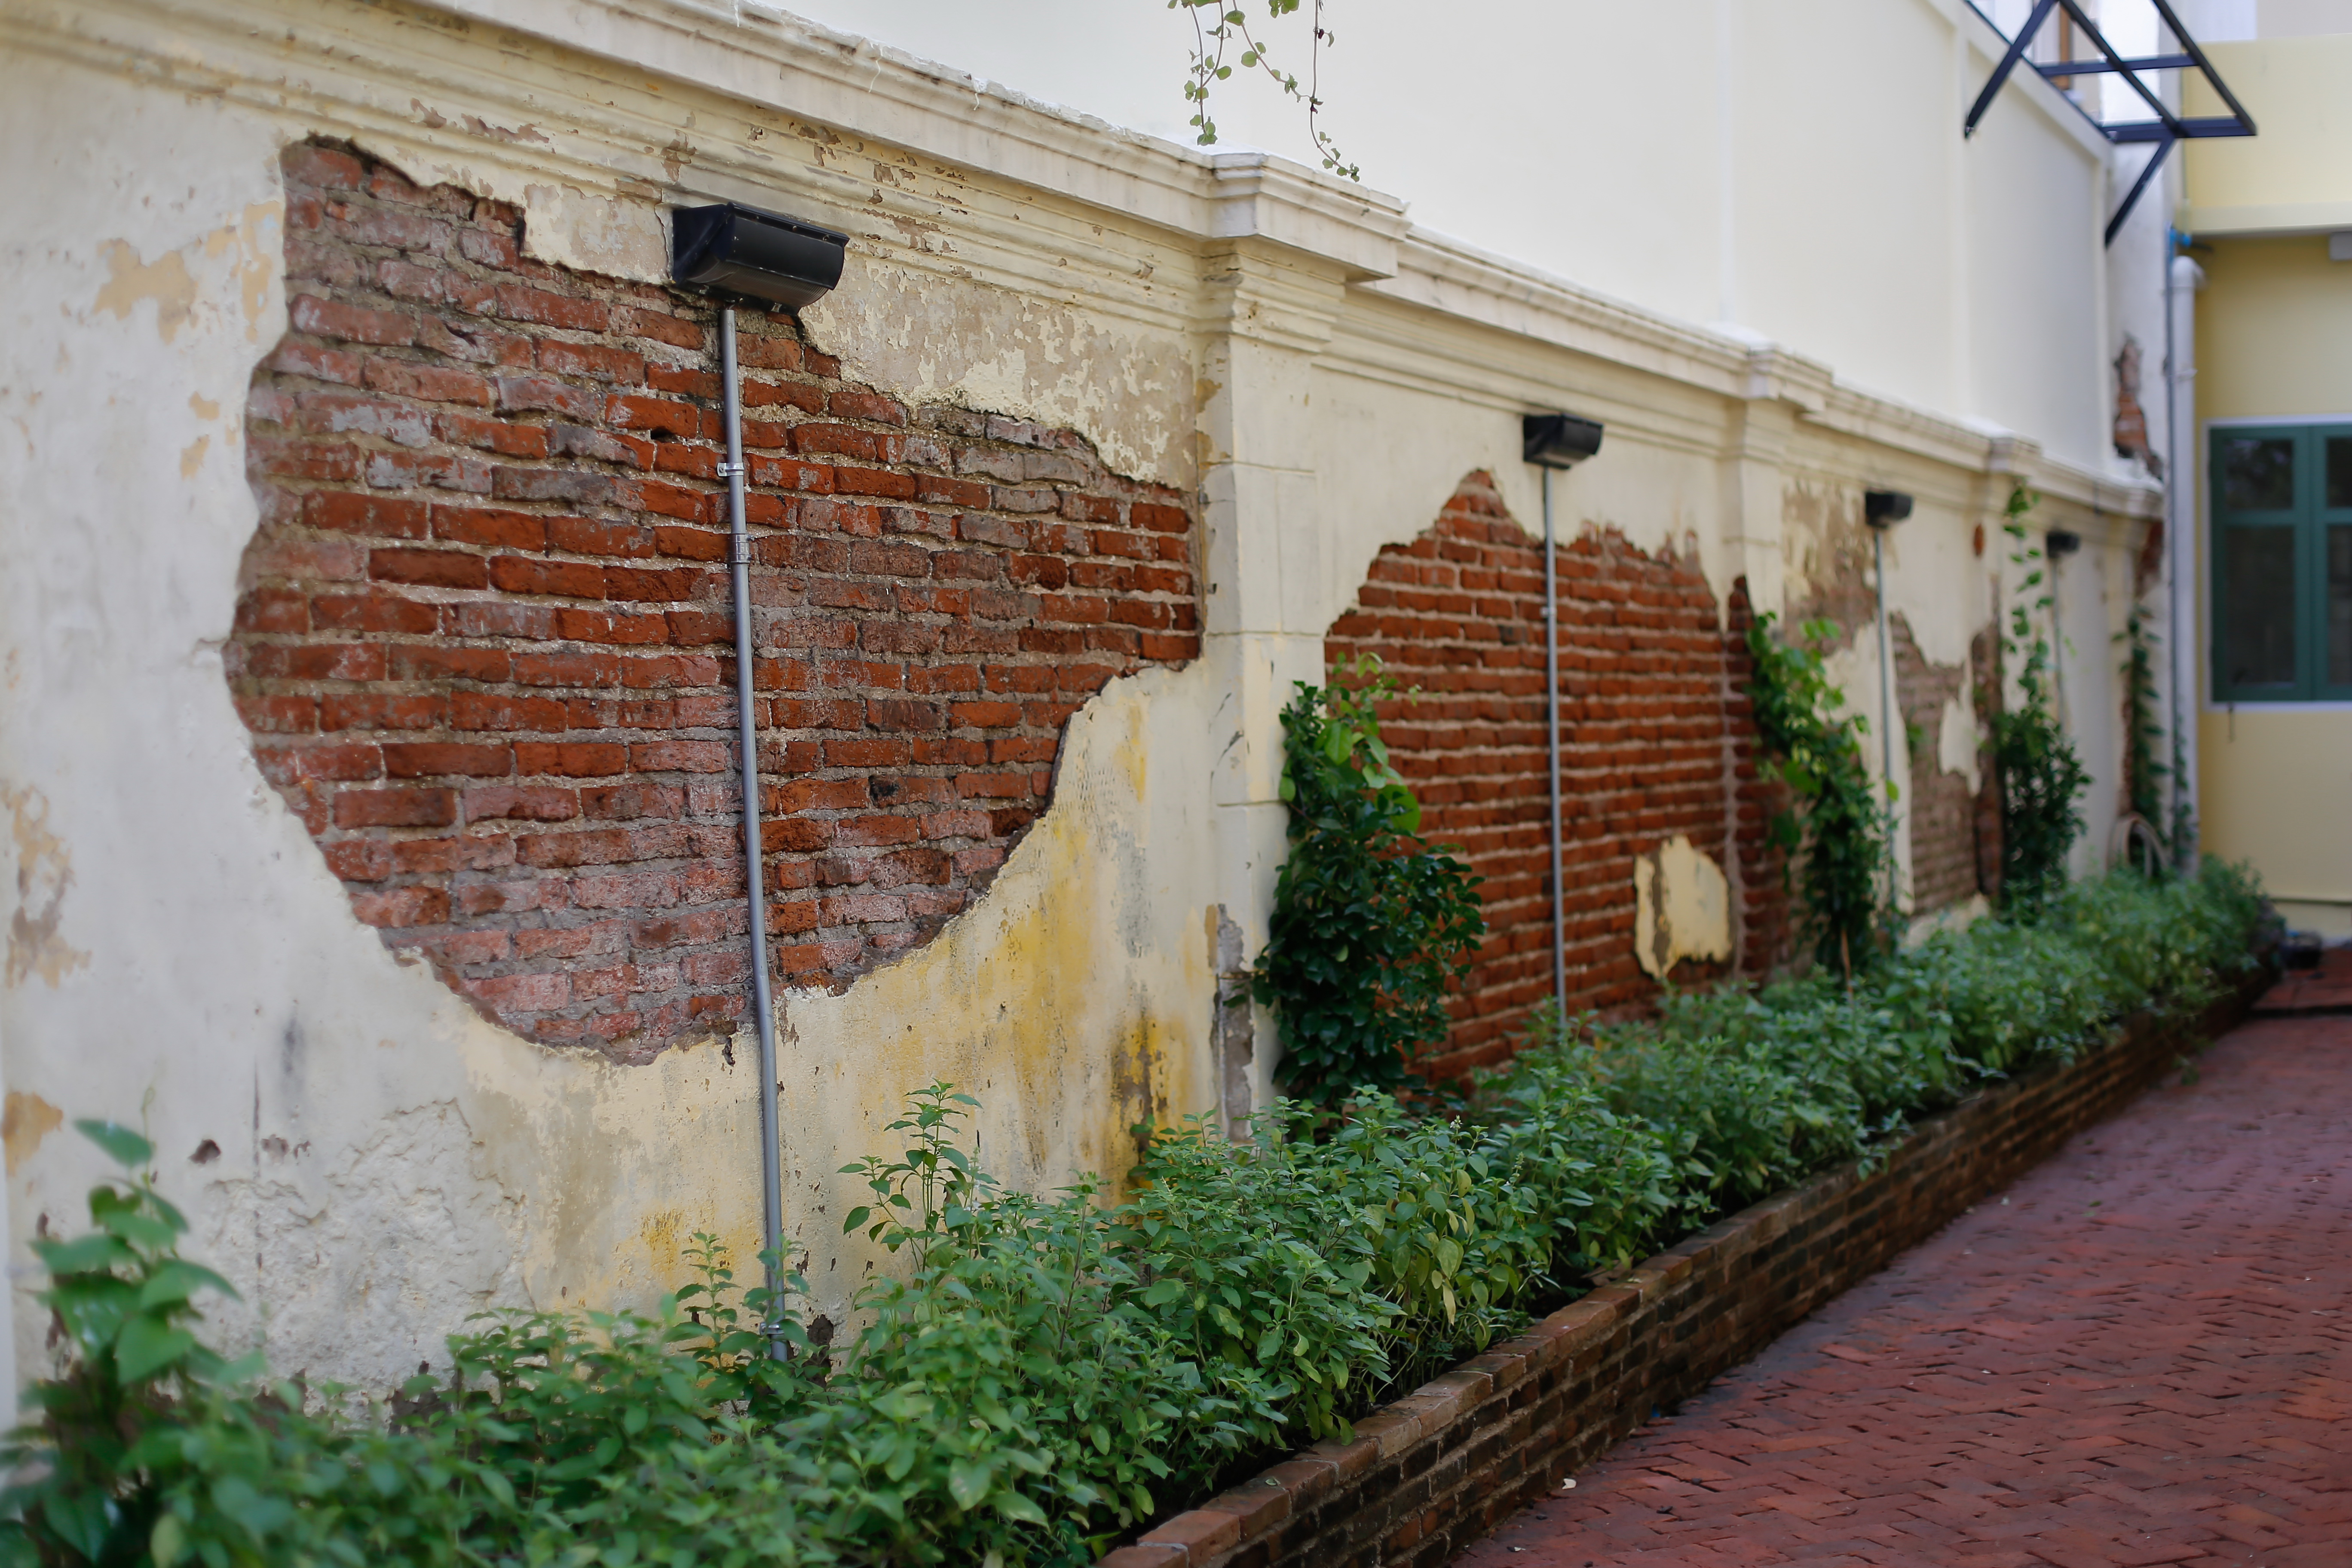 Historical Wall